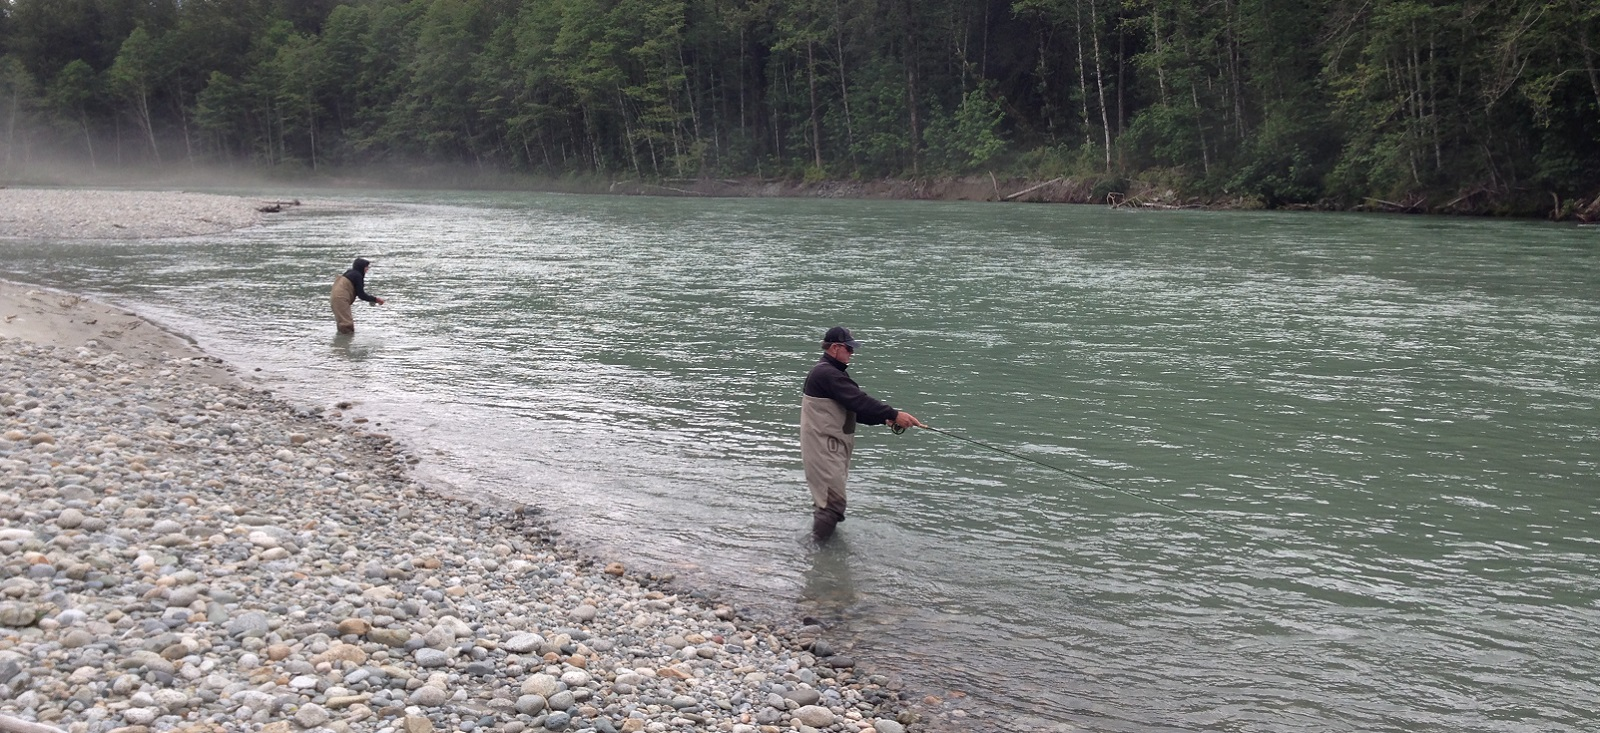 vancouver fishing, vancouver fishing guides, vancouver fishing tours, vancouver fishing charters, bc fishing, bc fishing guides, fraser river fishing